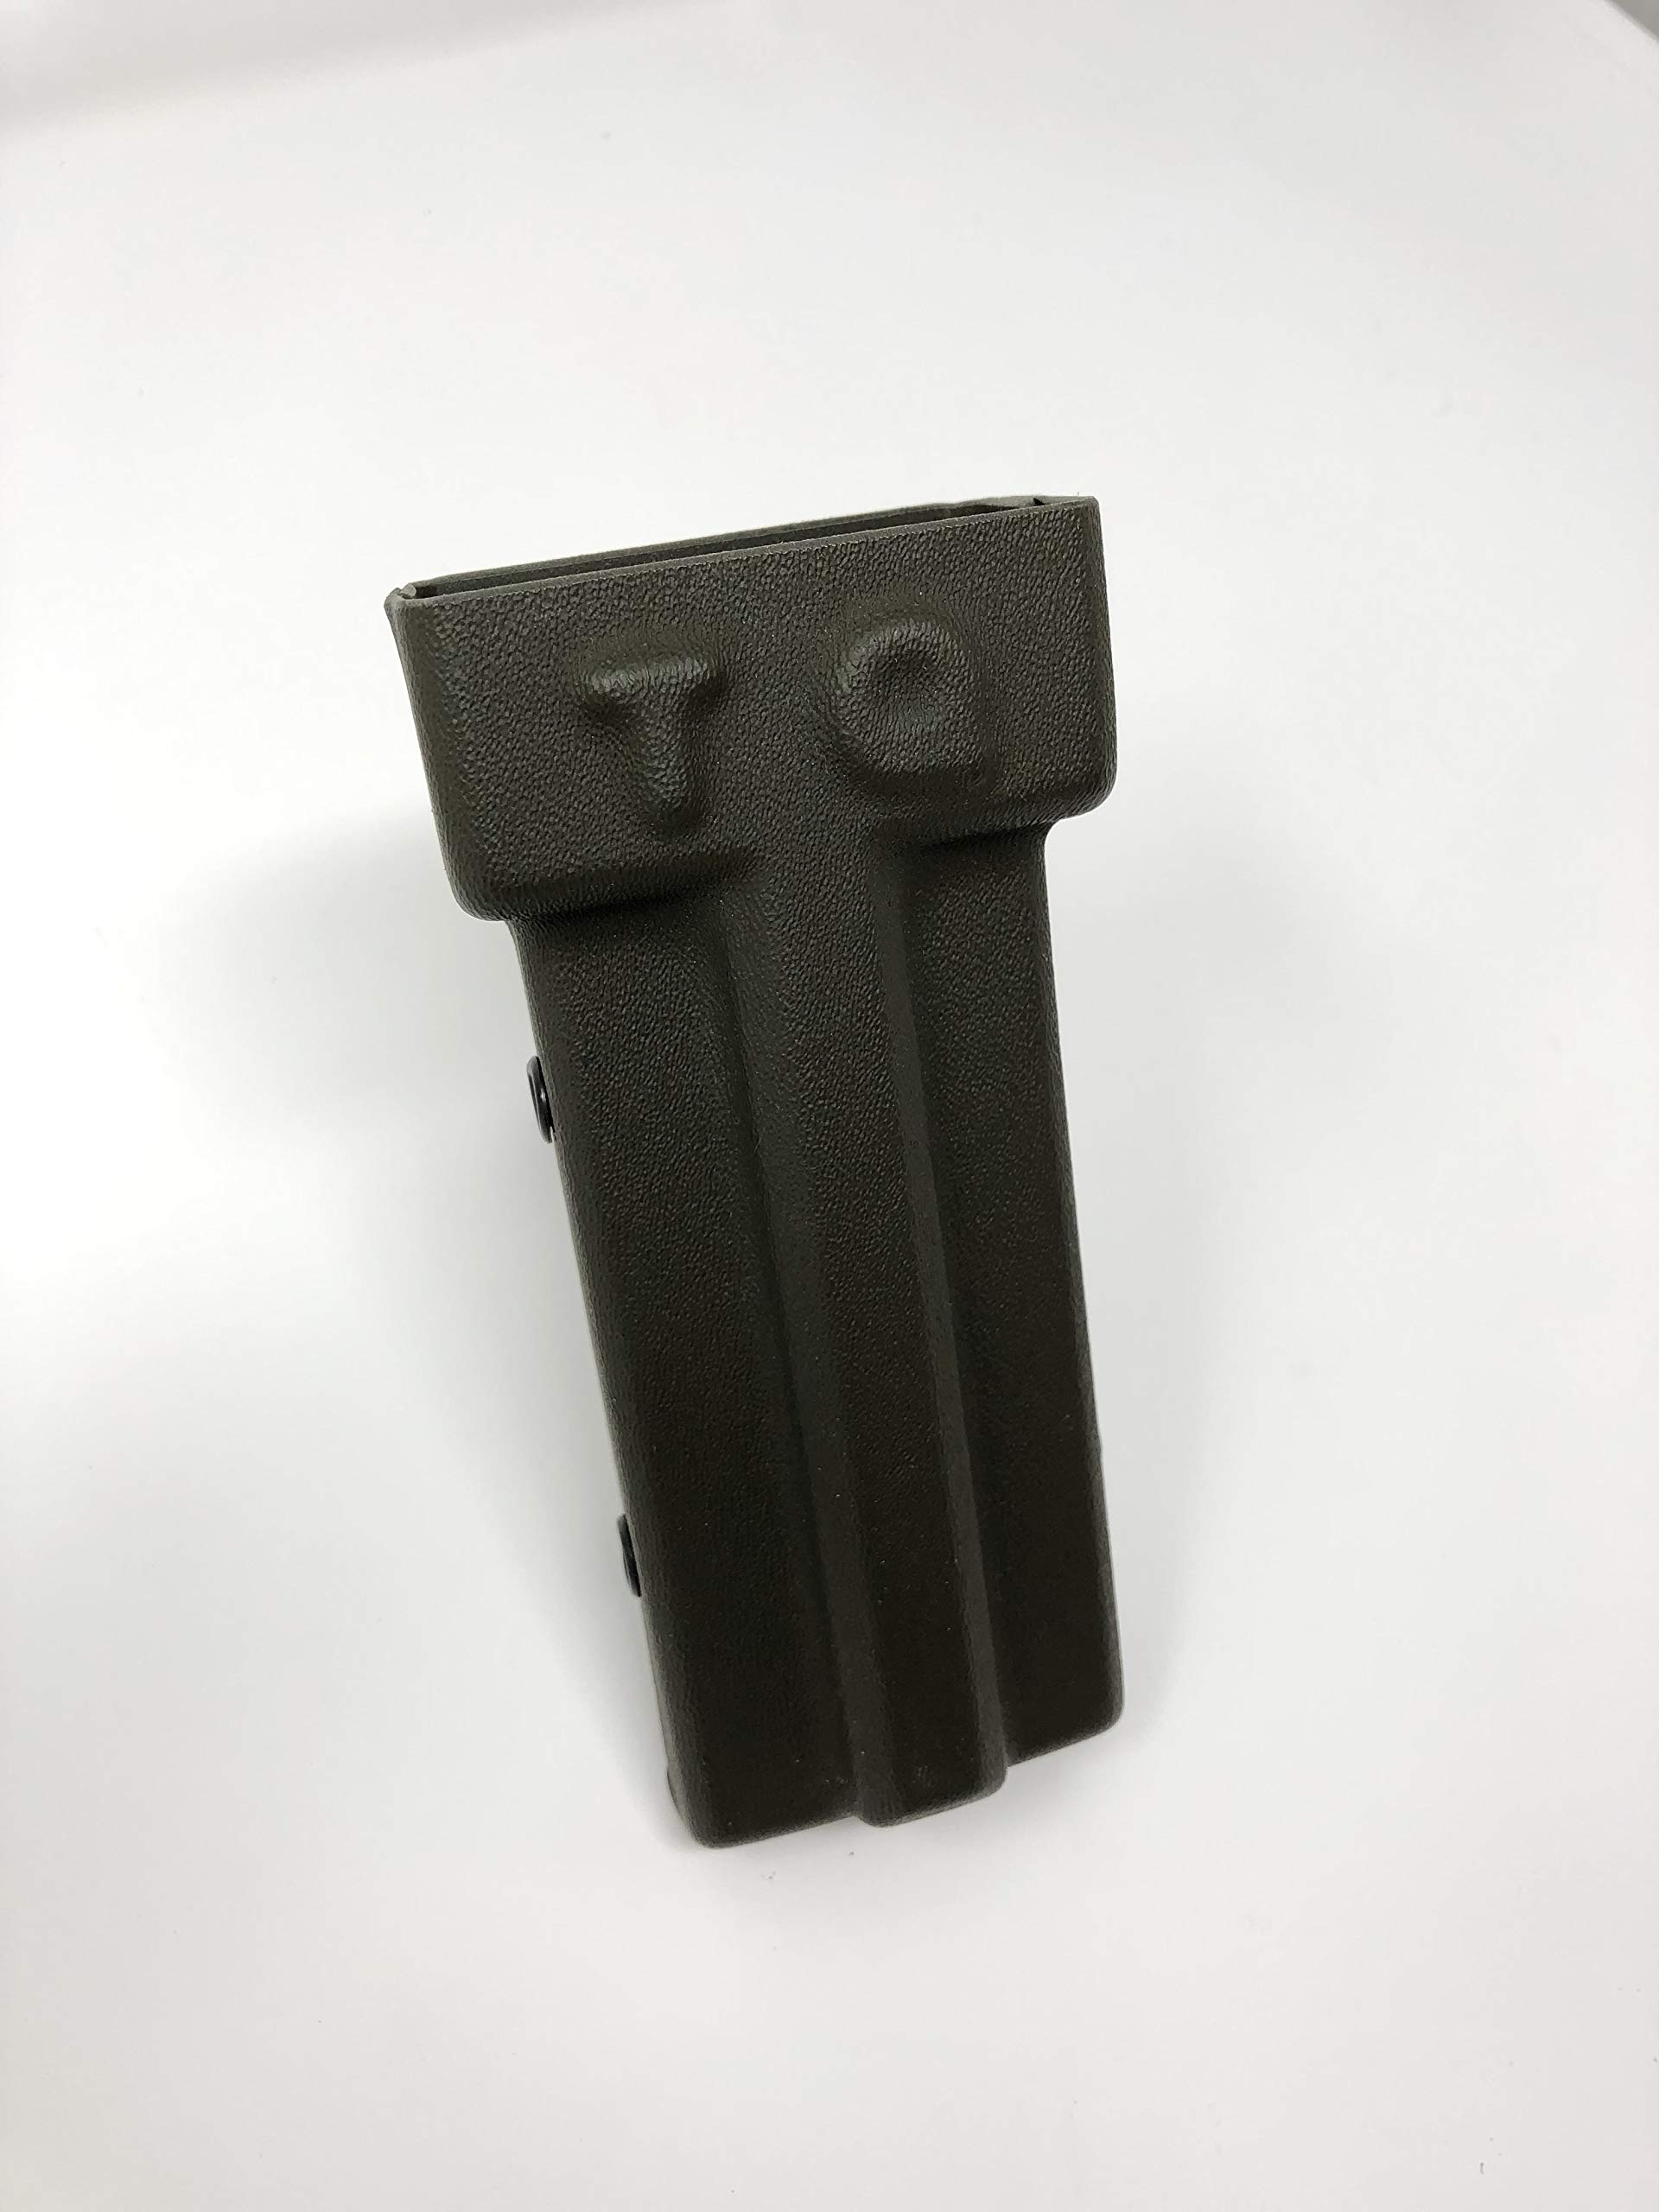 Gladius Holsters Tourniquet Holster with Molle Attachment (OD Green)